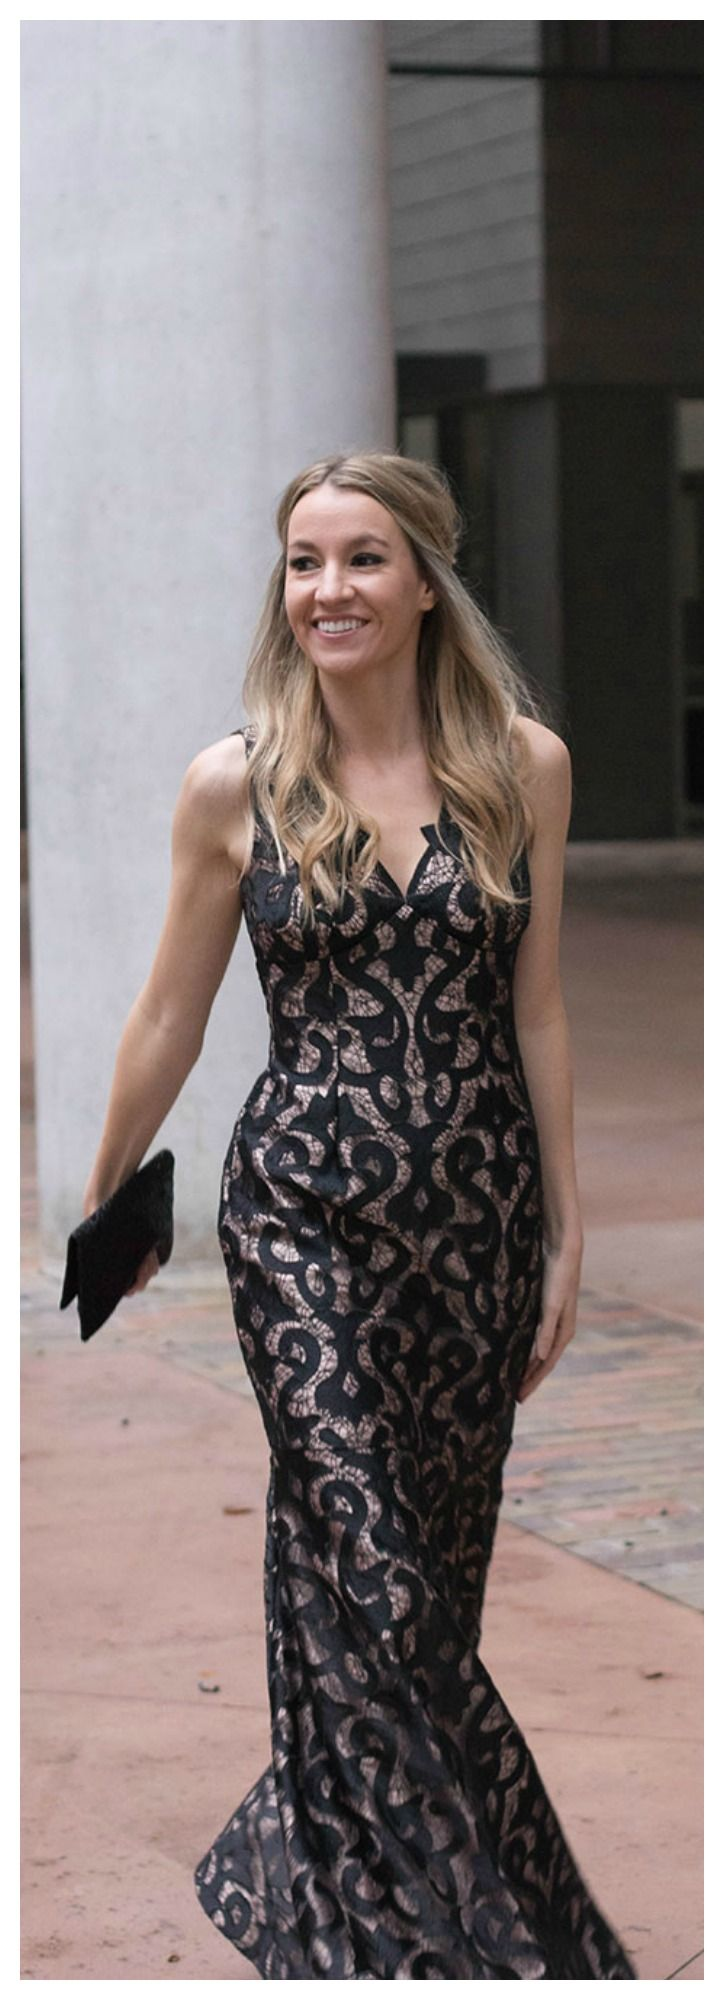 Wedding Guest Style. Black Tie Wedding Guest Dress. Black Tie Wedding Outfit Ideas - Life By Lee